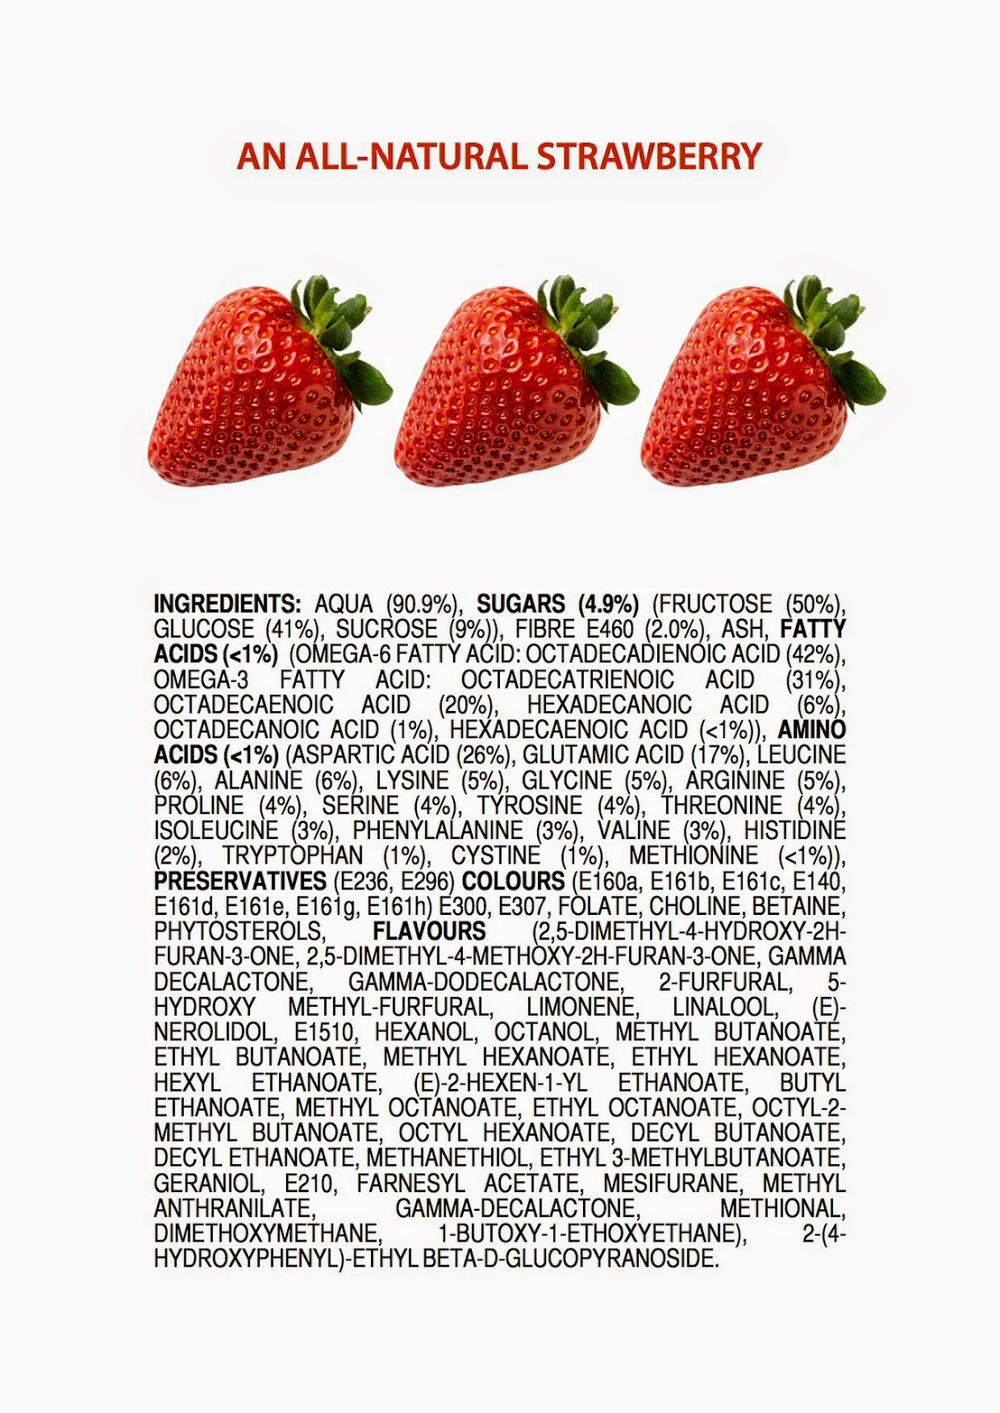 ingredients-of-an-all-natural-strawberry-english.jpg